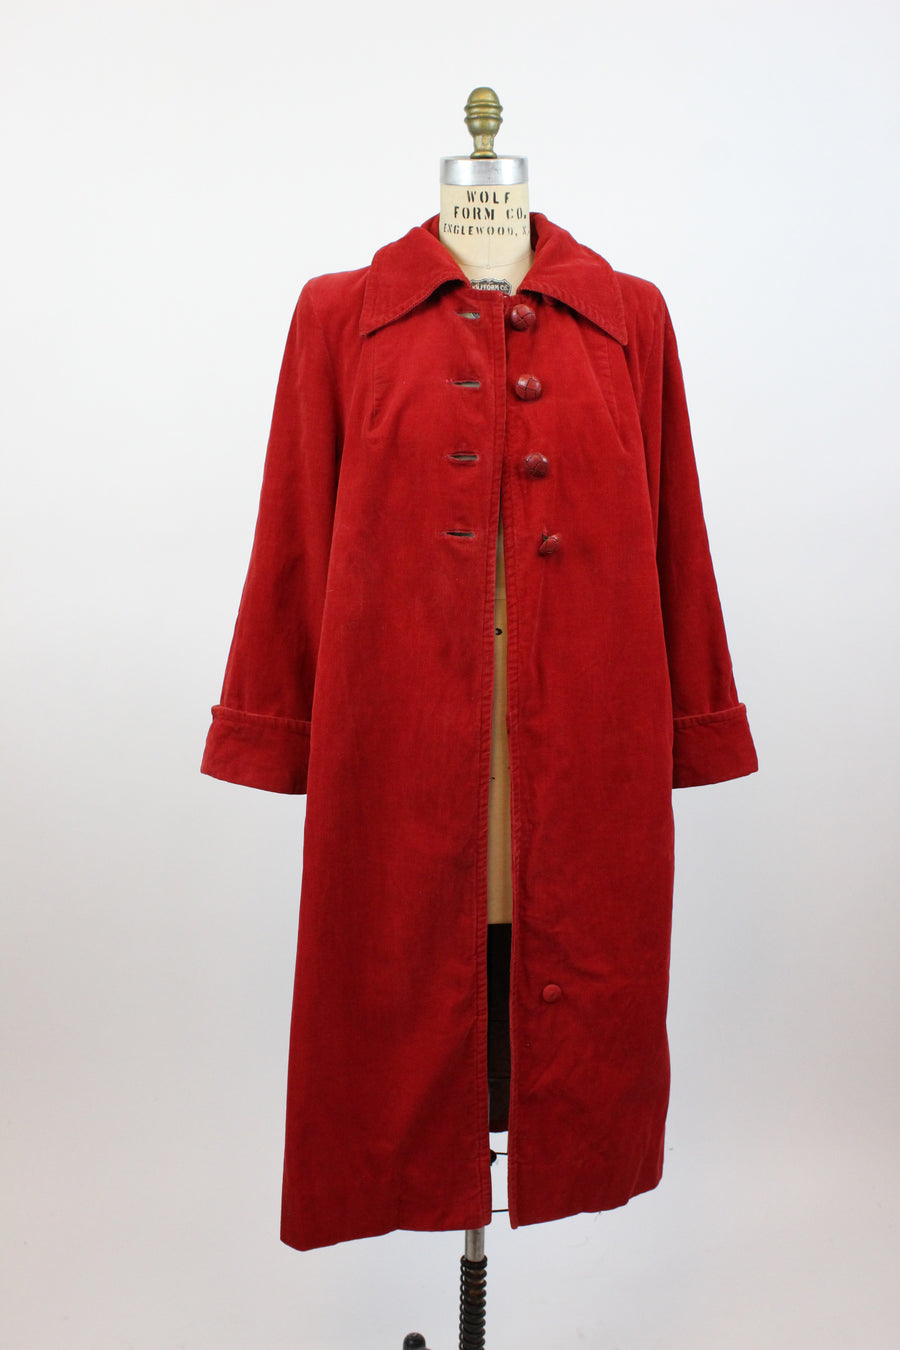 1940s red corduroy coat medium large | vintage jacket new in